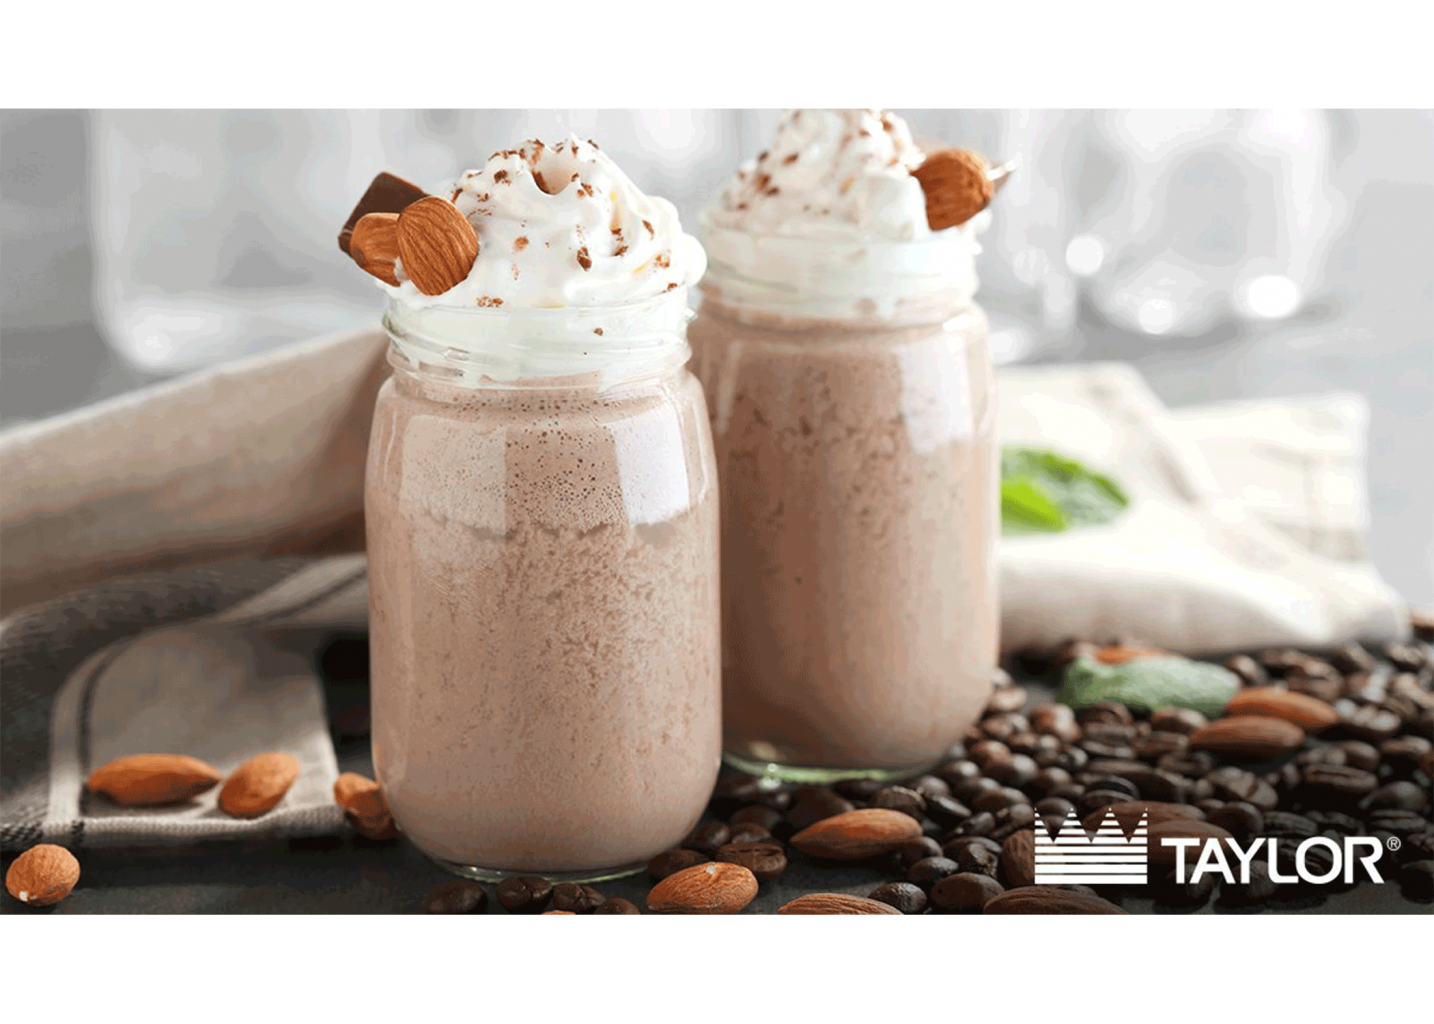 A Taylor milkshake with coffee, almonds and chocolate